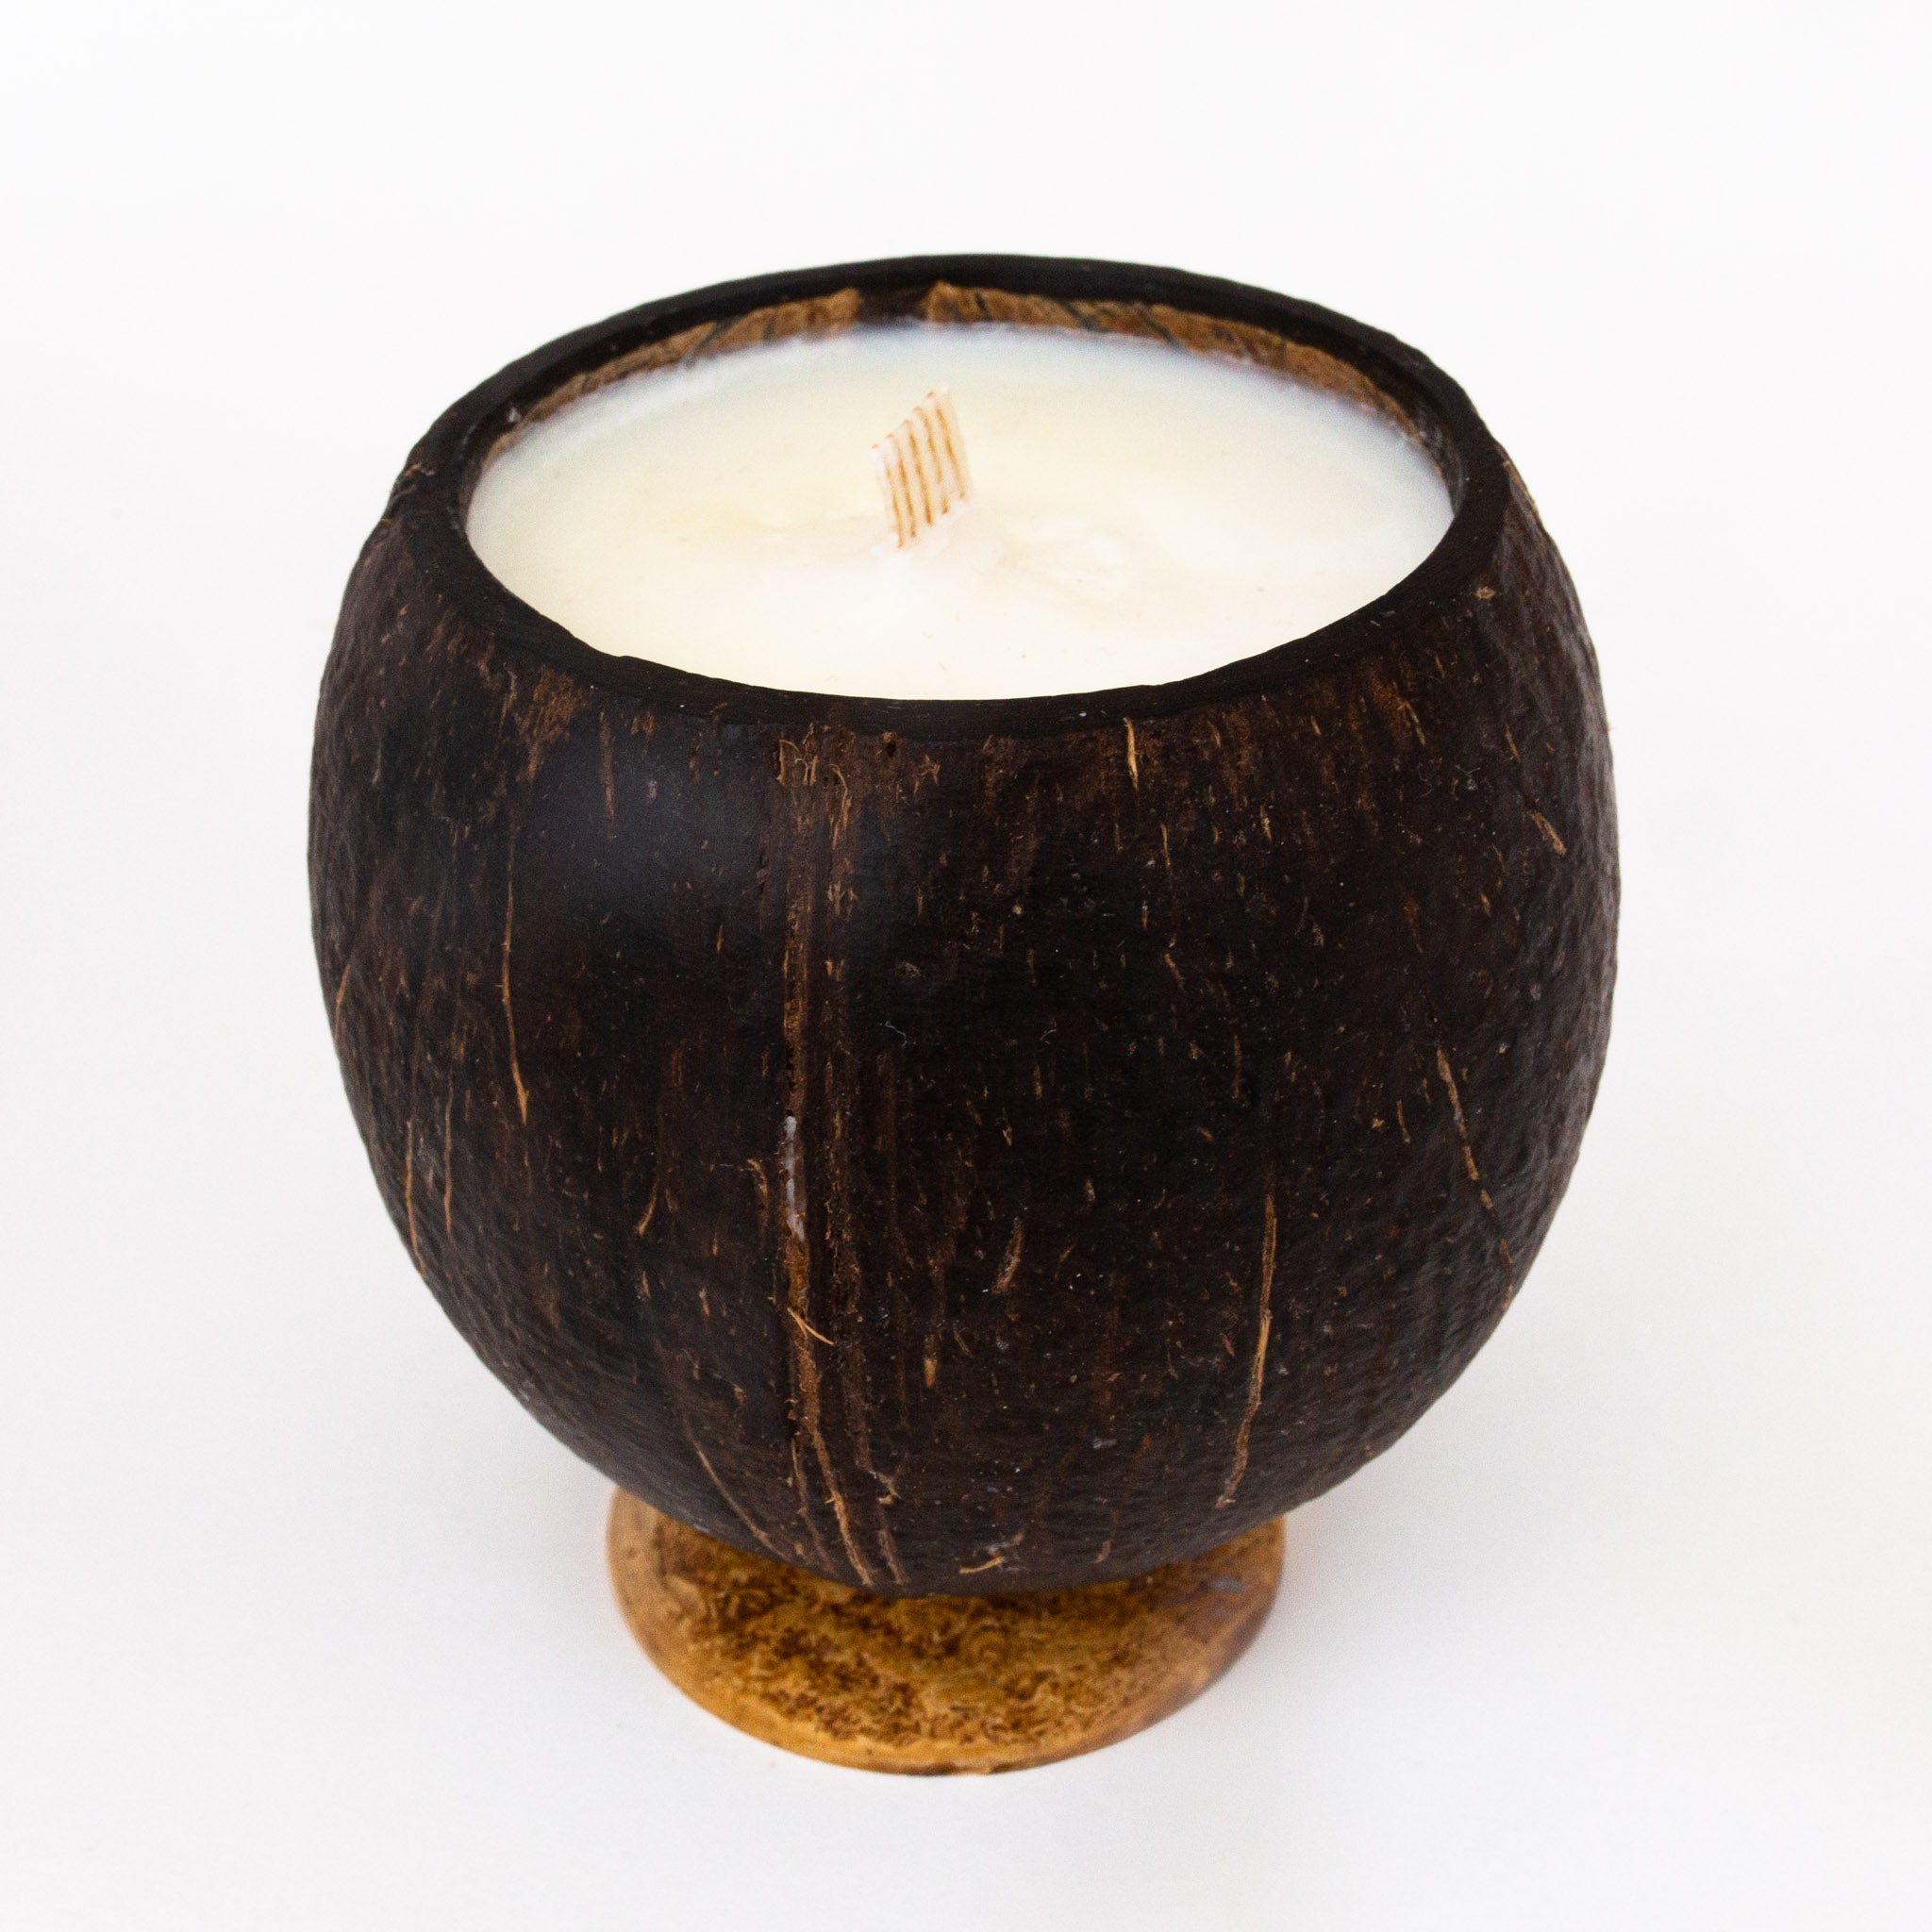 Whole Coconut Candle - Black Tuxedo